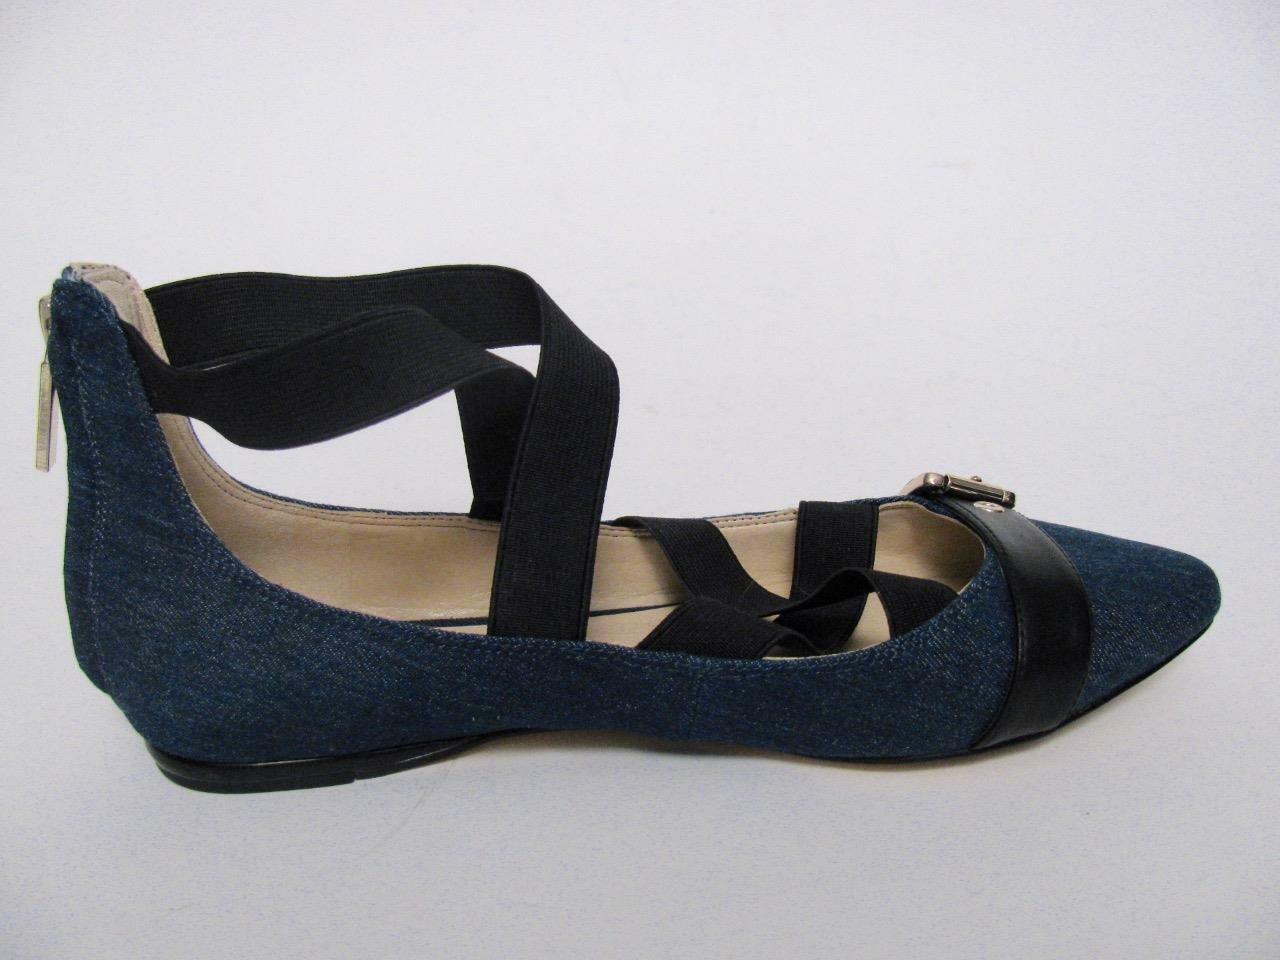 NINE WEST BLUE JEAN DENIM POINTED TOE SEXY STRAPPY LADIES BALLET FLATS Schuhe8